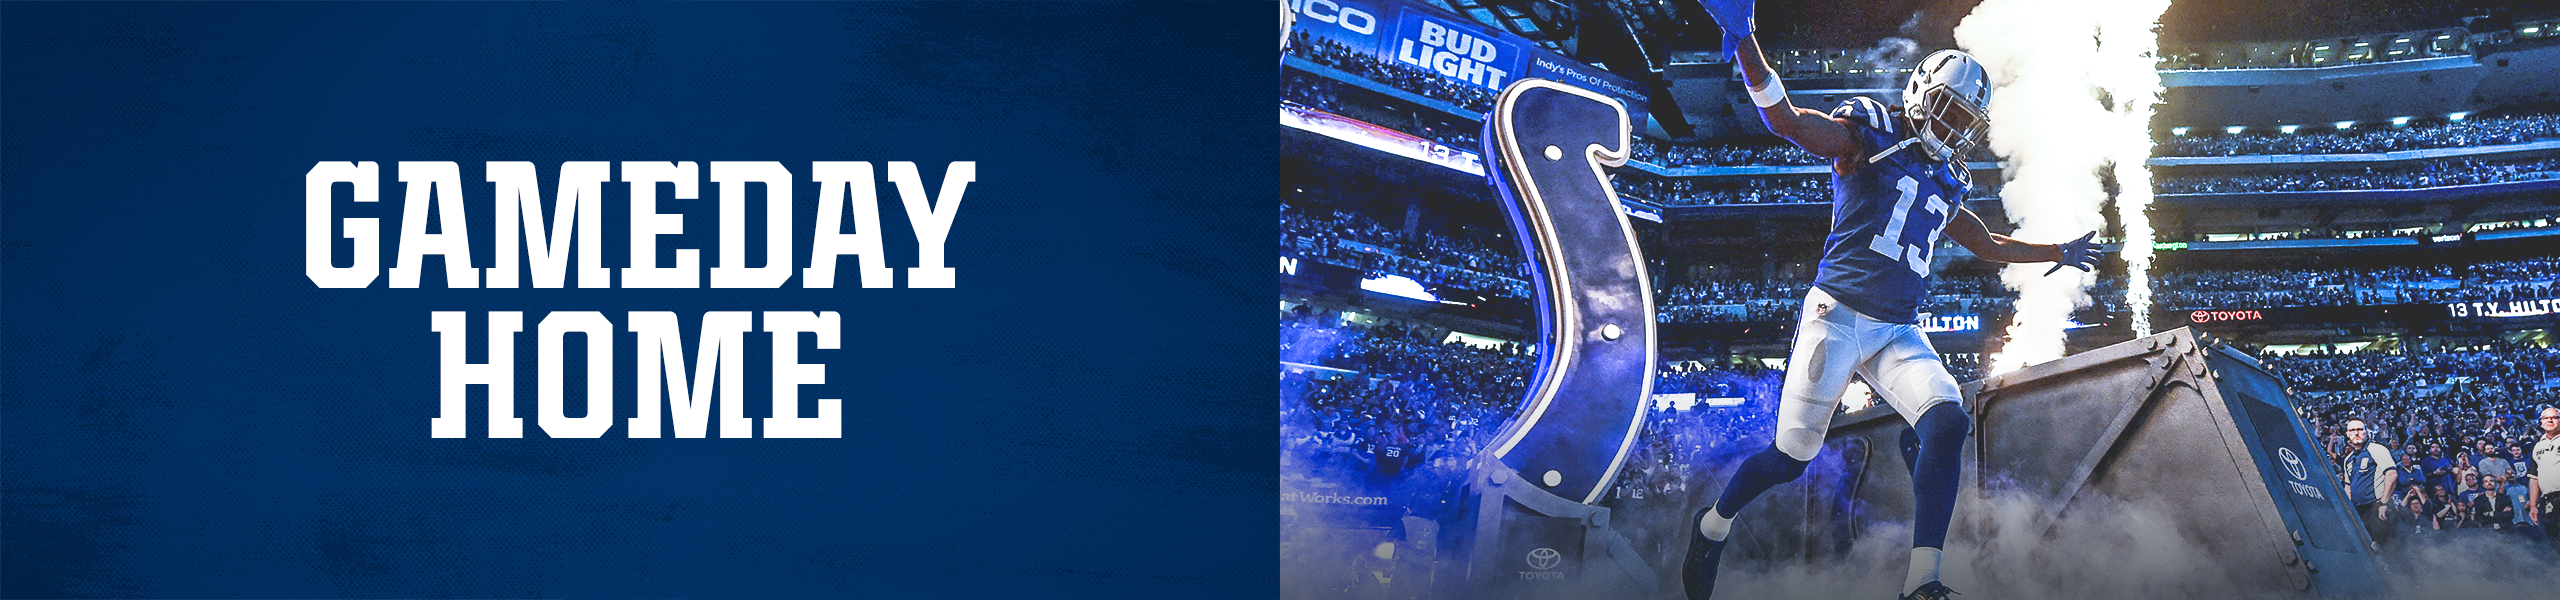 Indianapolis Colts Gameday Home